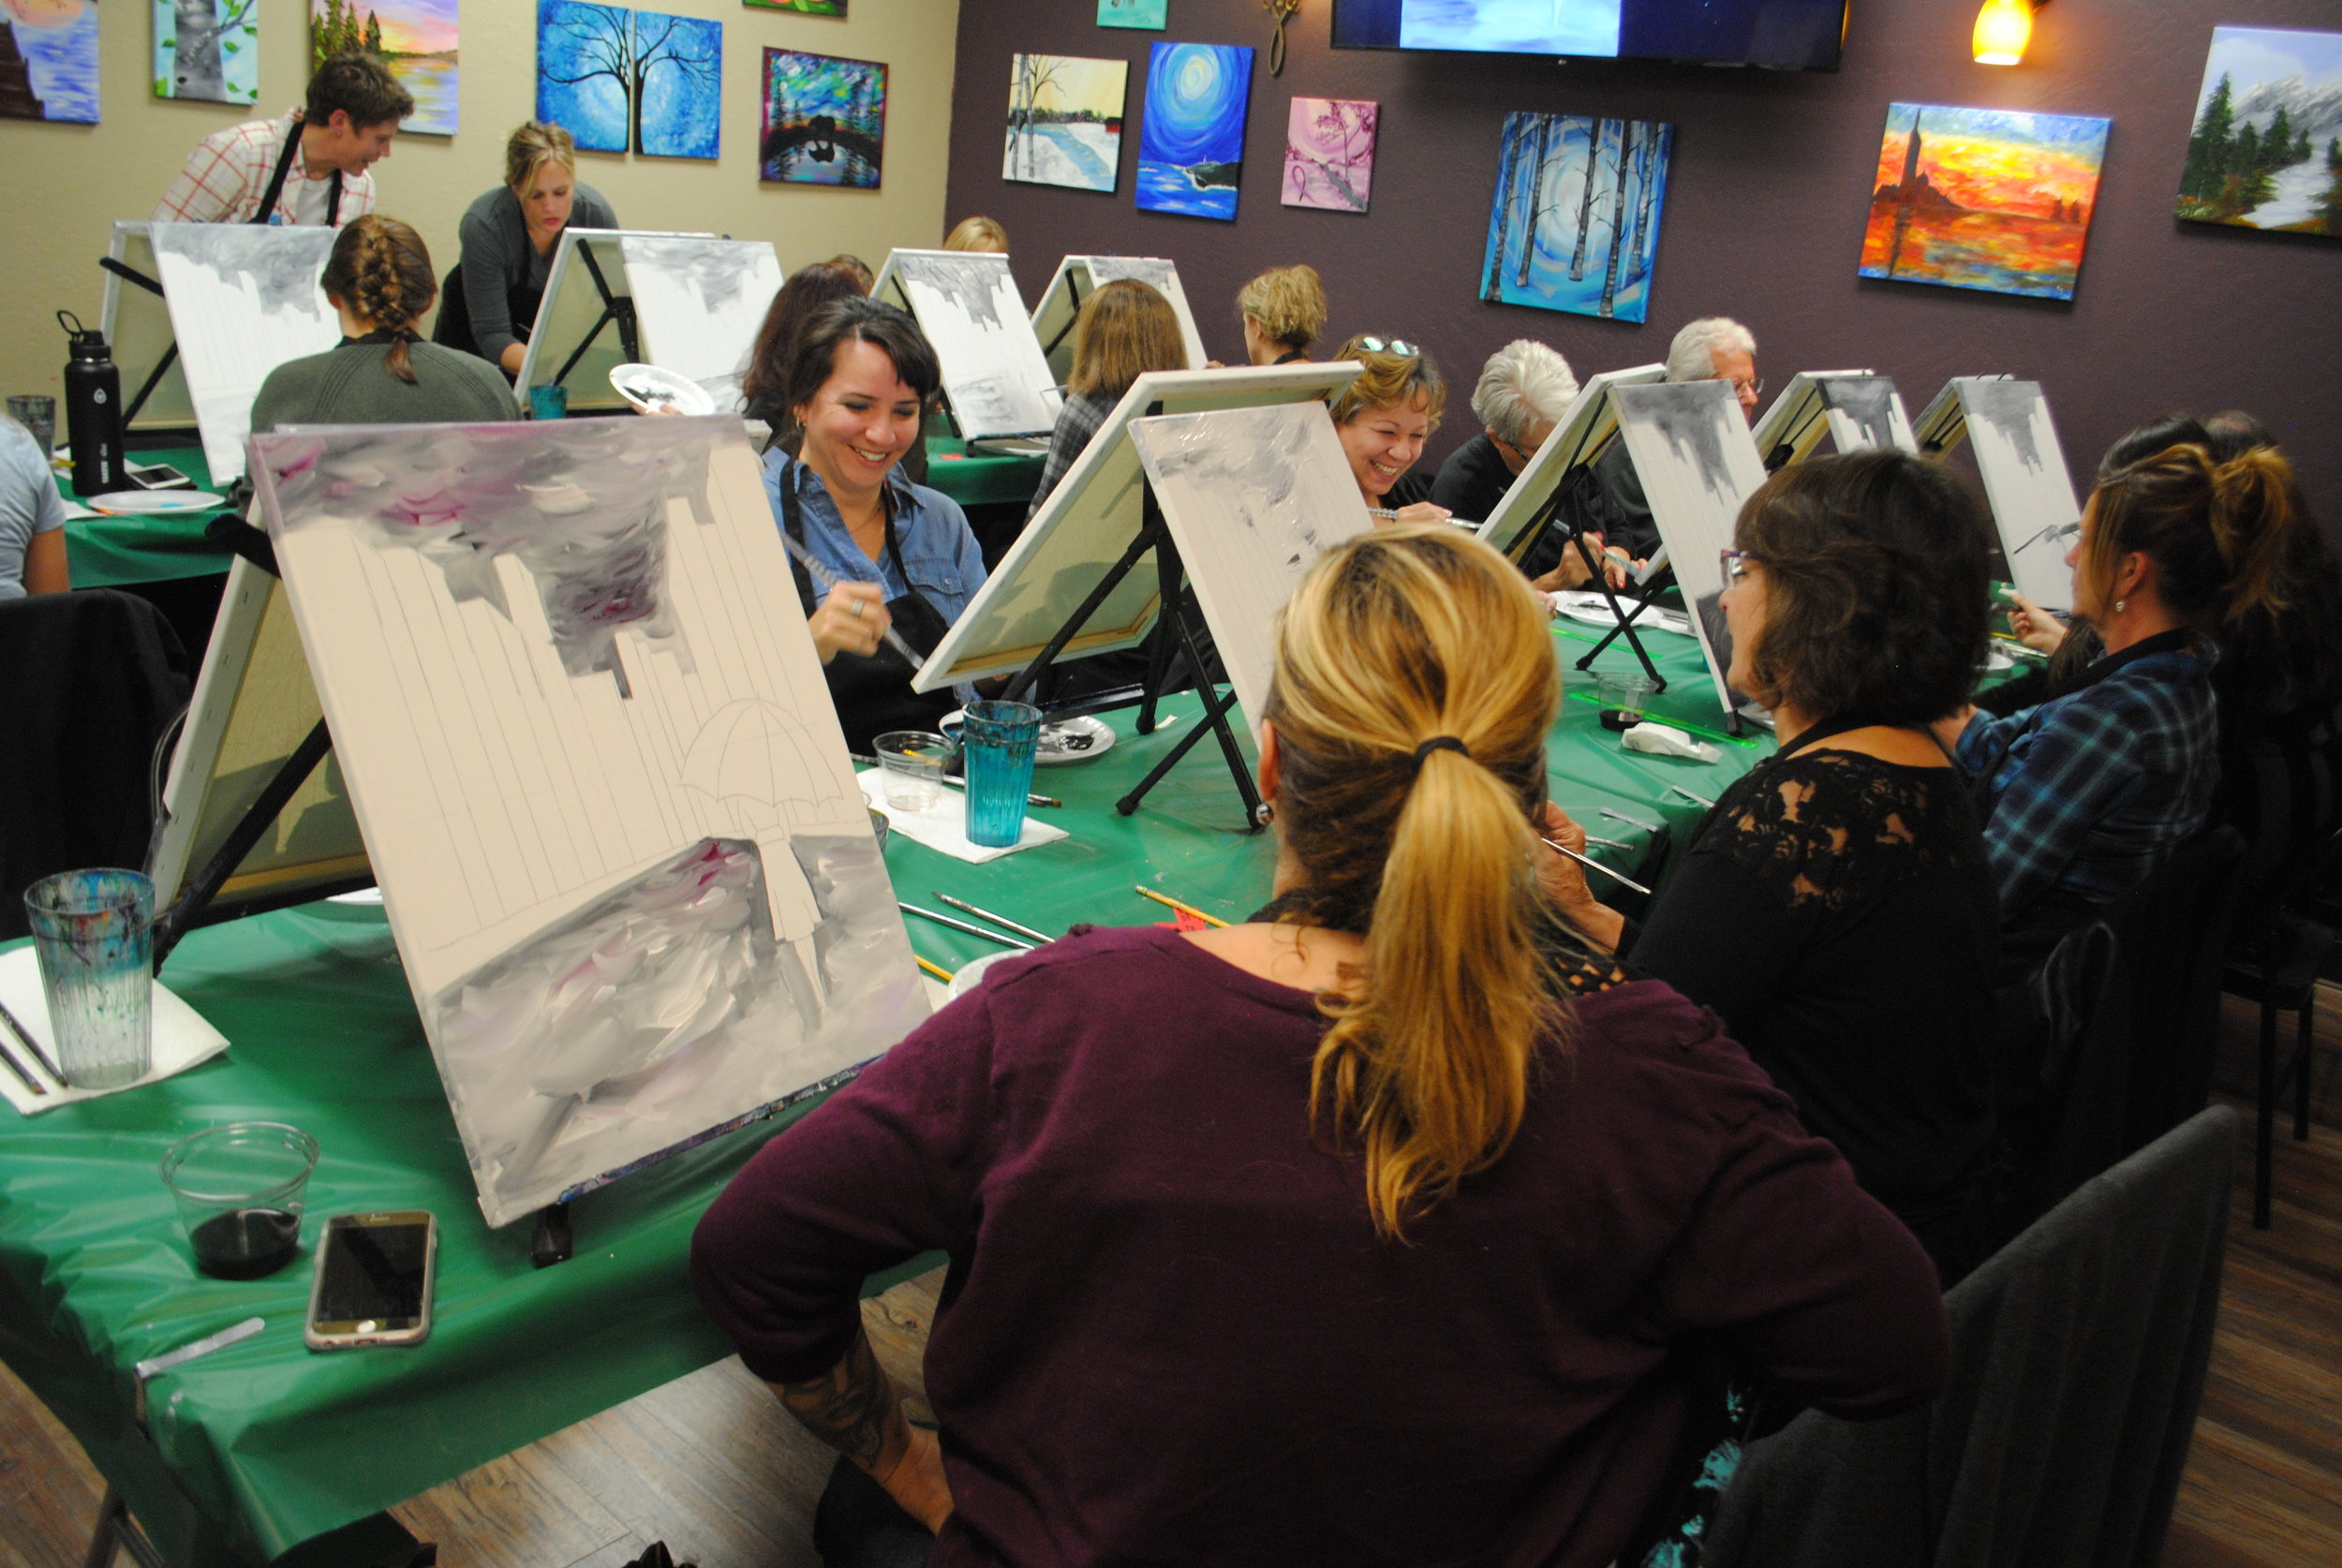 ART 4 JOY - Sip n' Paint - Central Point - What to do in Southern Oregon - Things to do - Events - Girls Night - Family - Kids (13).JPG